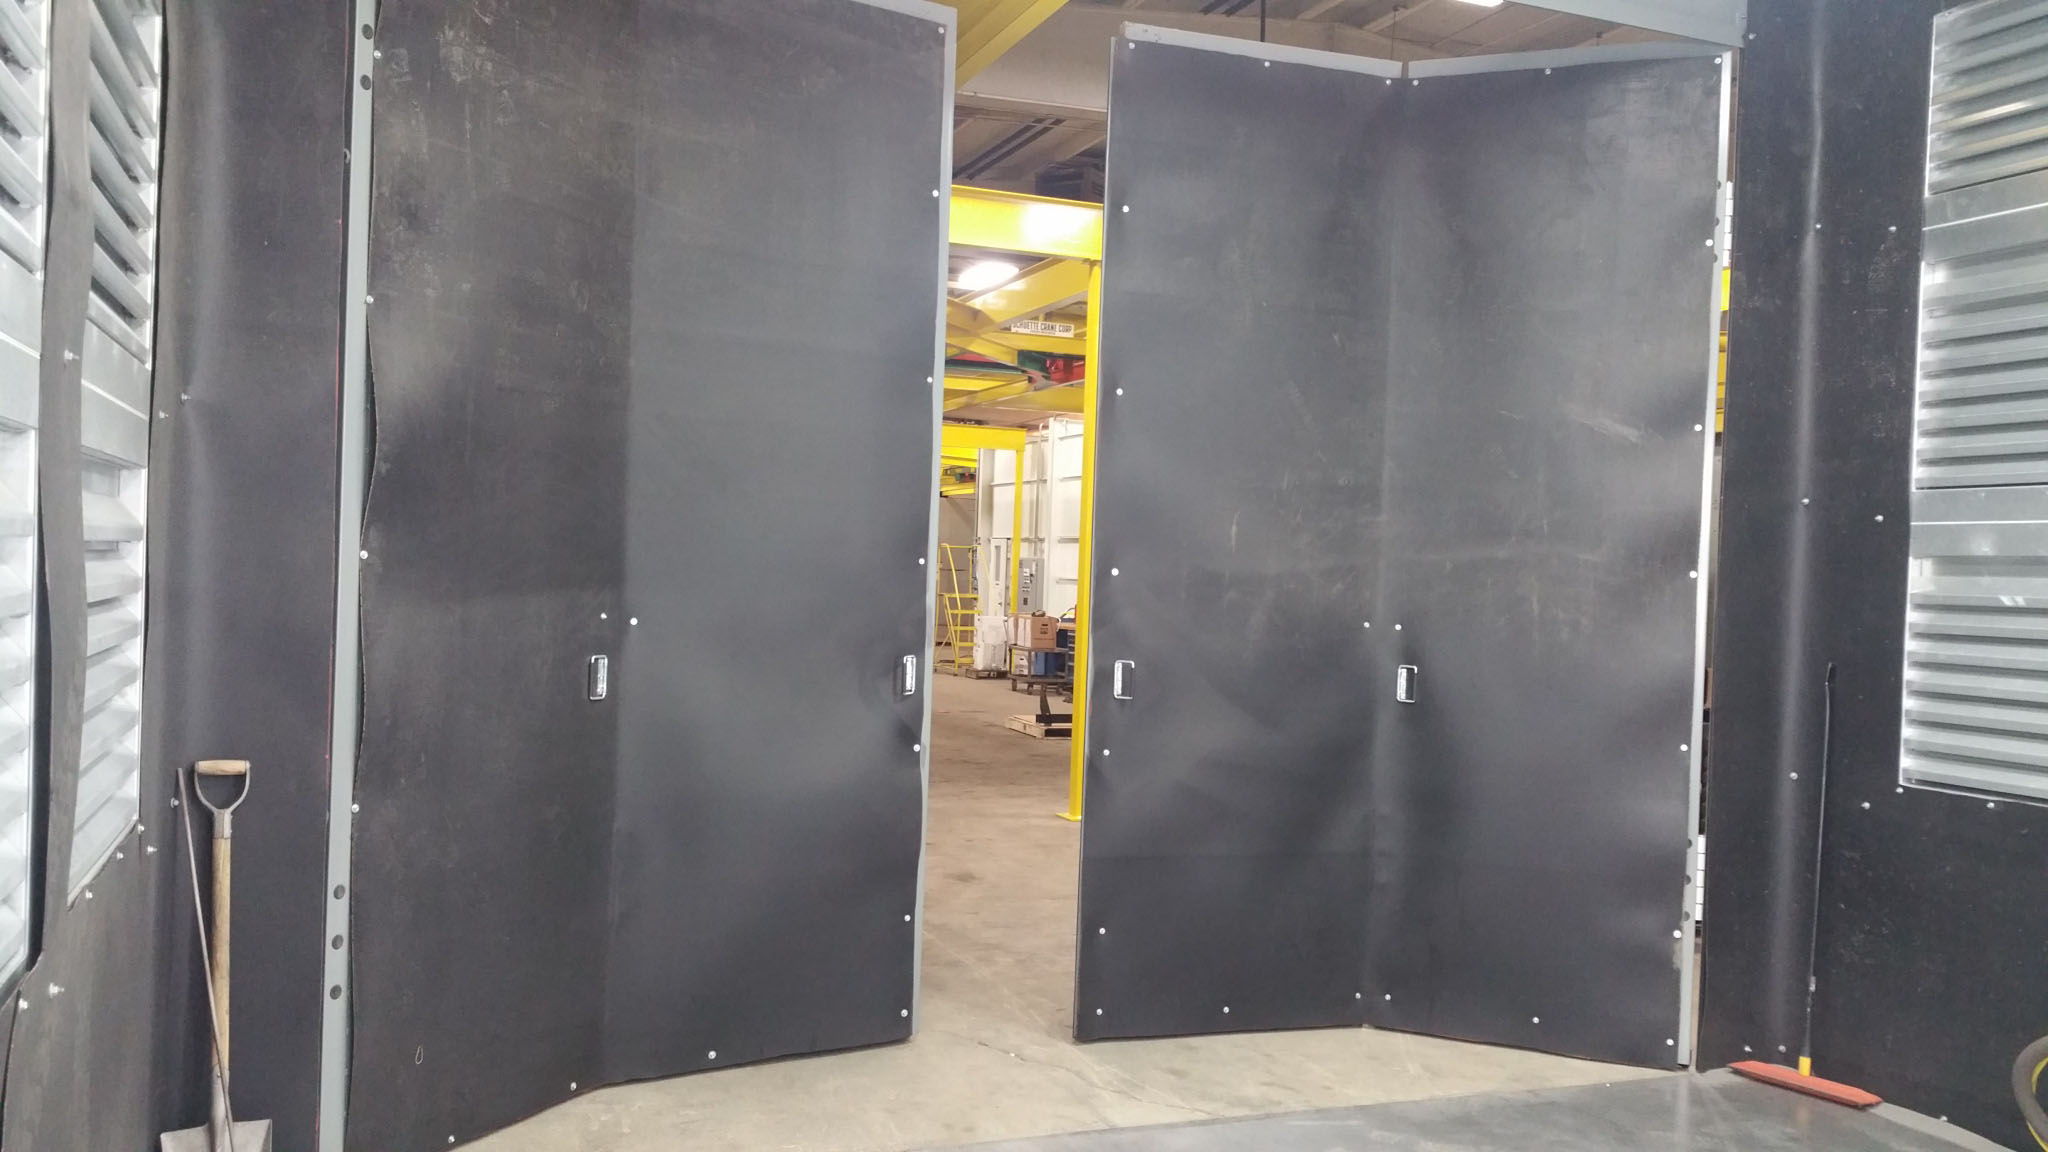 blast shop, powder coating, kenosha